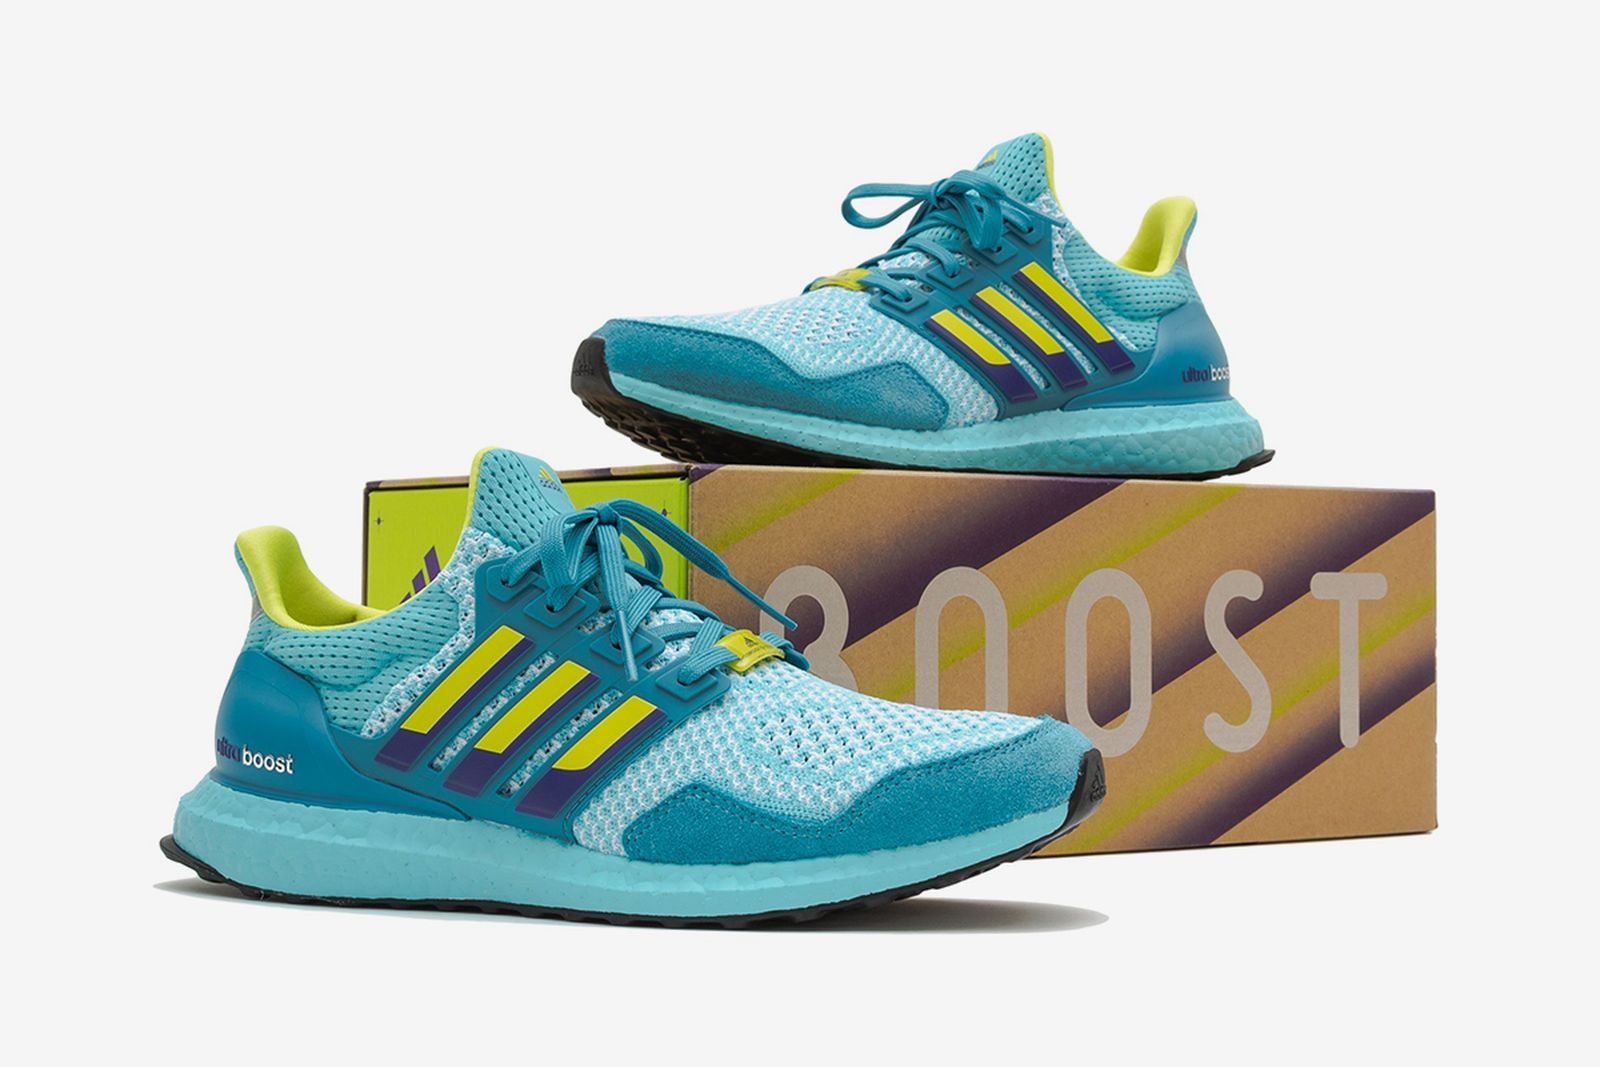 adidas-ultraboost-1-0-dna-zx-collection-release-date-price-03